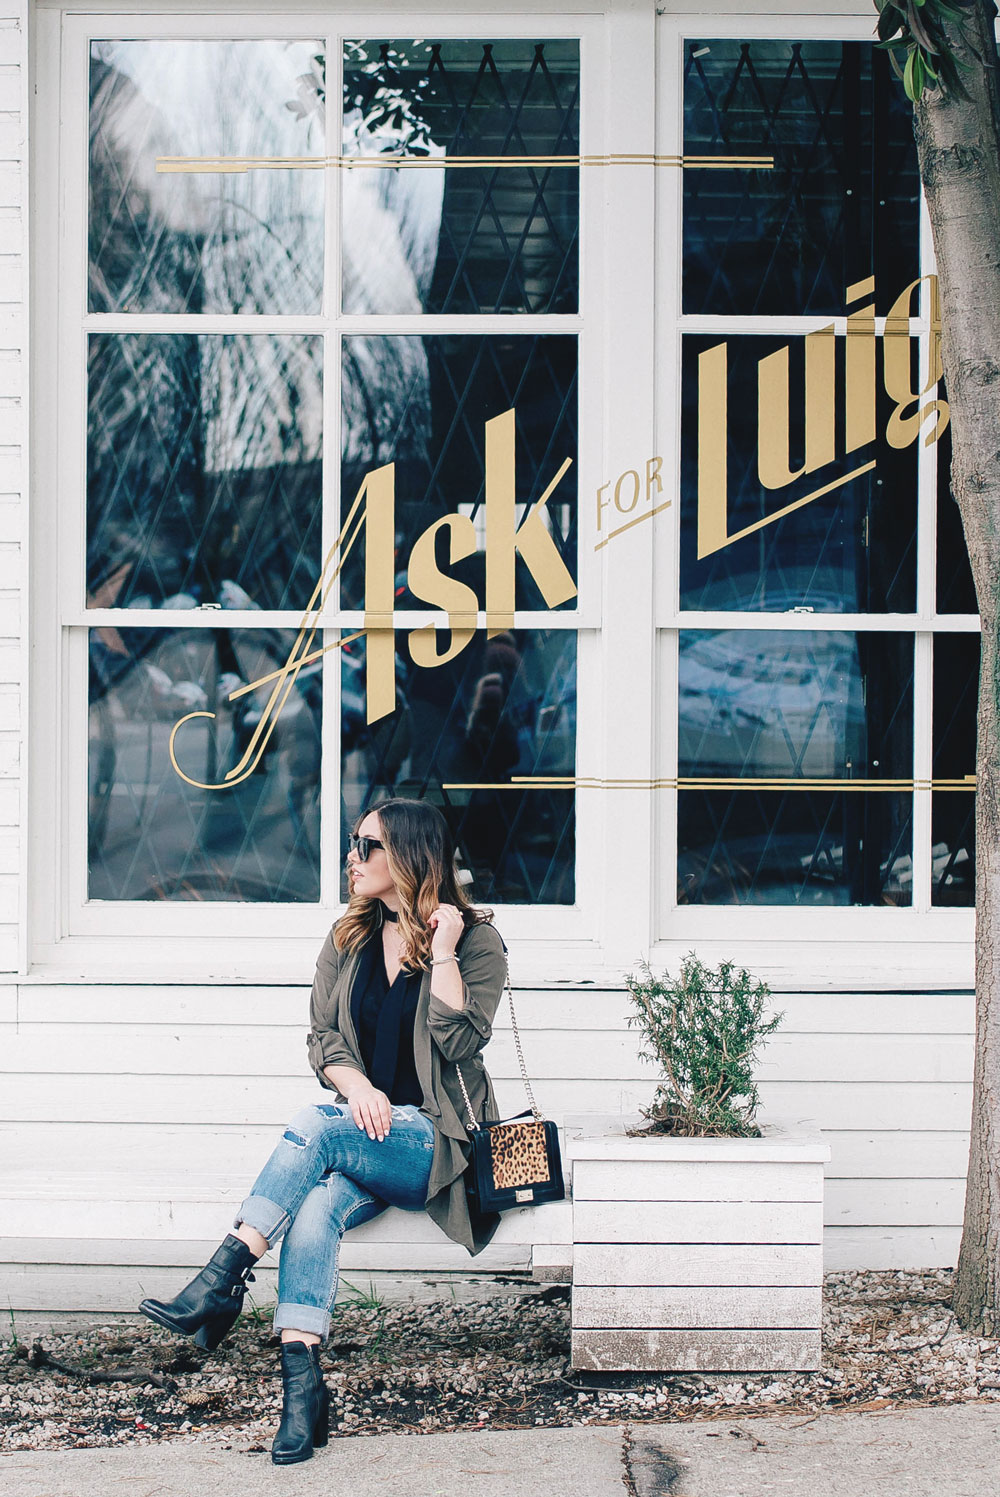 Romantic restaurants in Vancouver at Ask for Luigi, best date night spots in Vancouver, in Frye ankle boots, boyfriend jeans, skinny scarf, Revolve trench coat by To Vogue or Bust